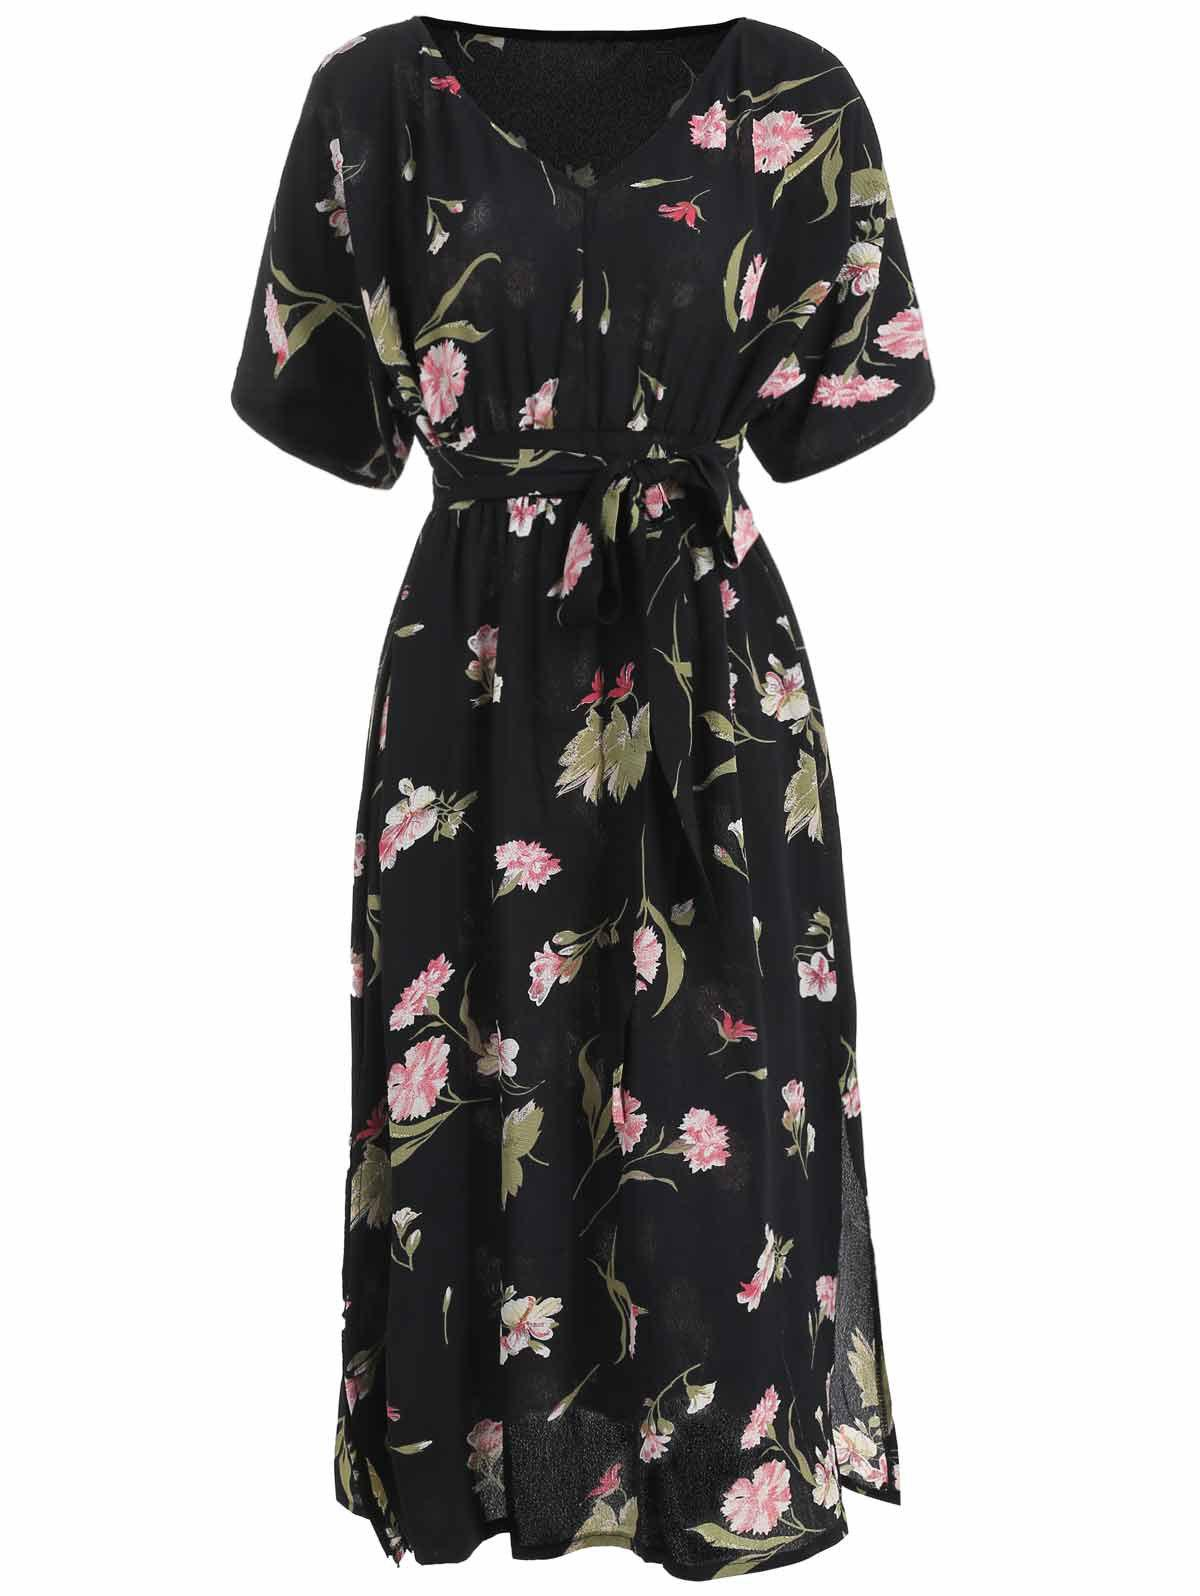 Floral Print High Waist Slit Dress - BLACK XL